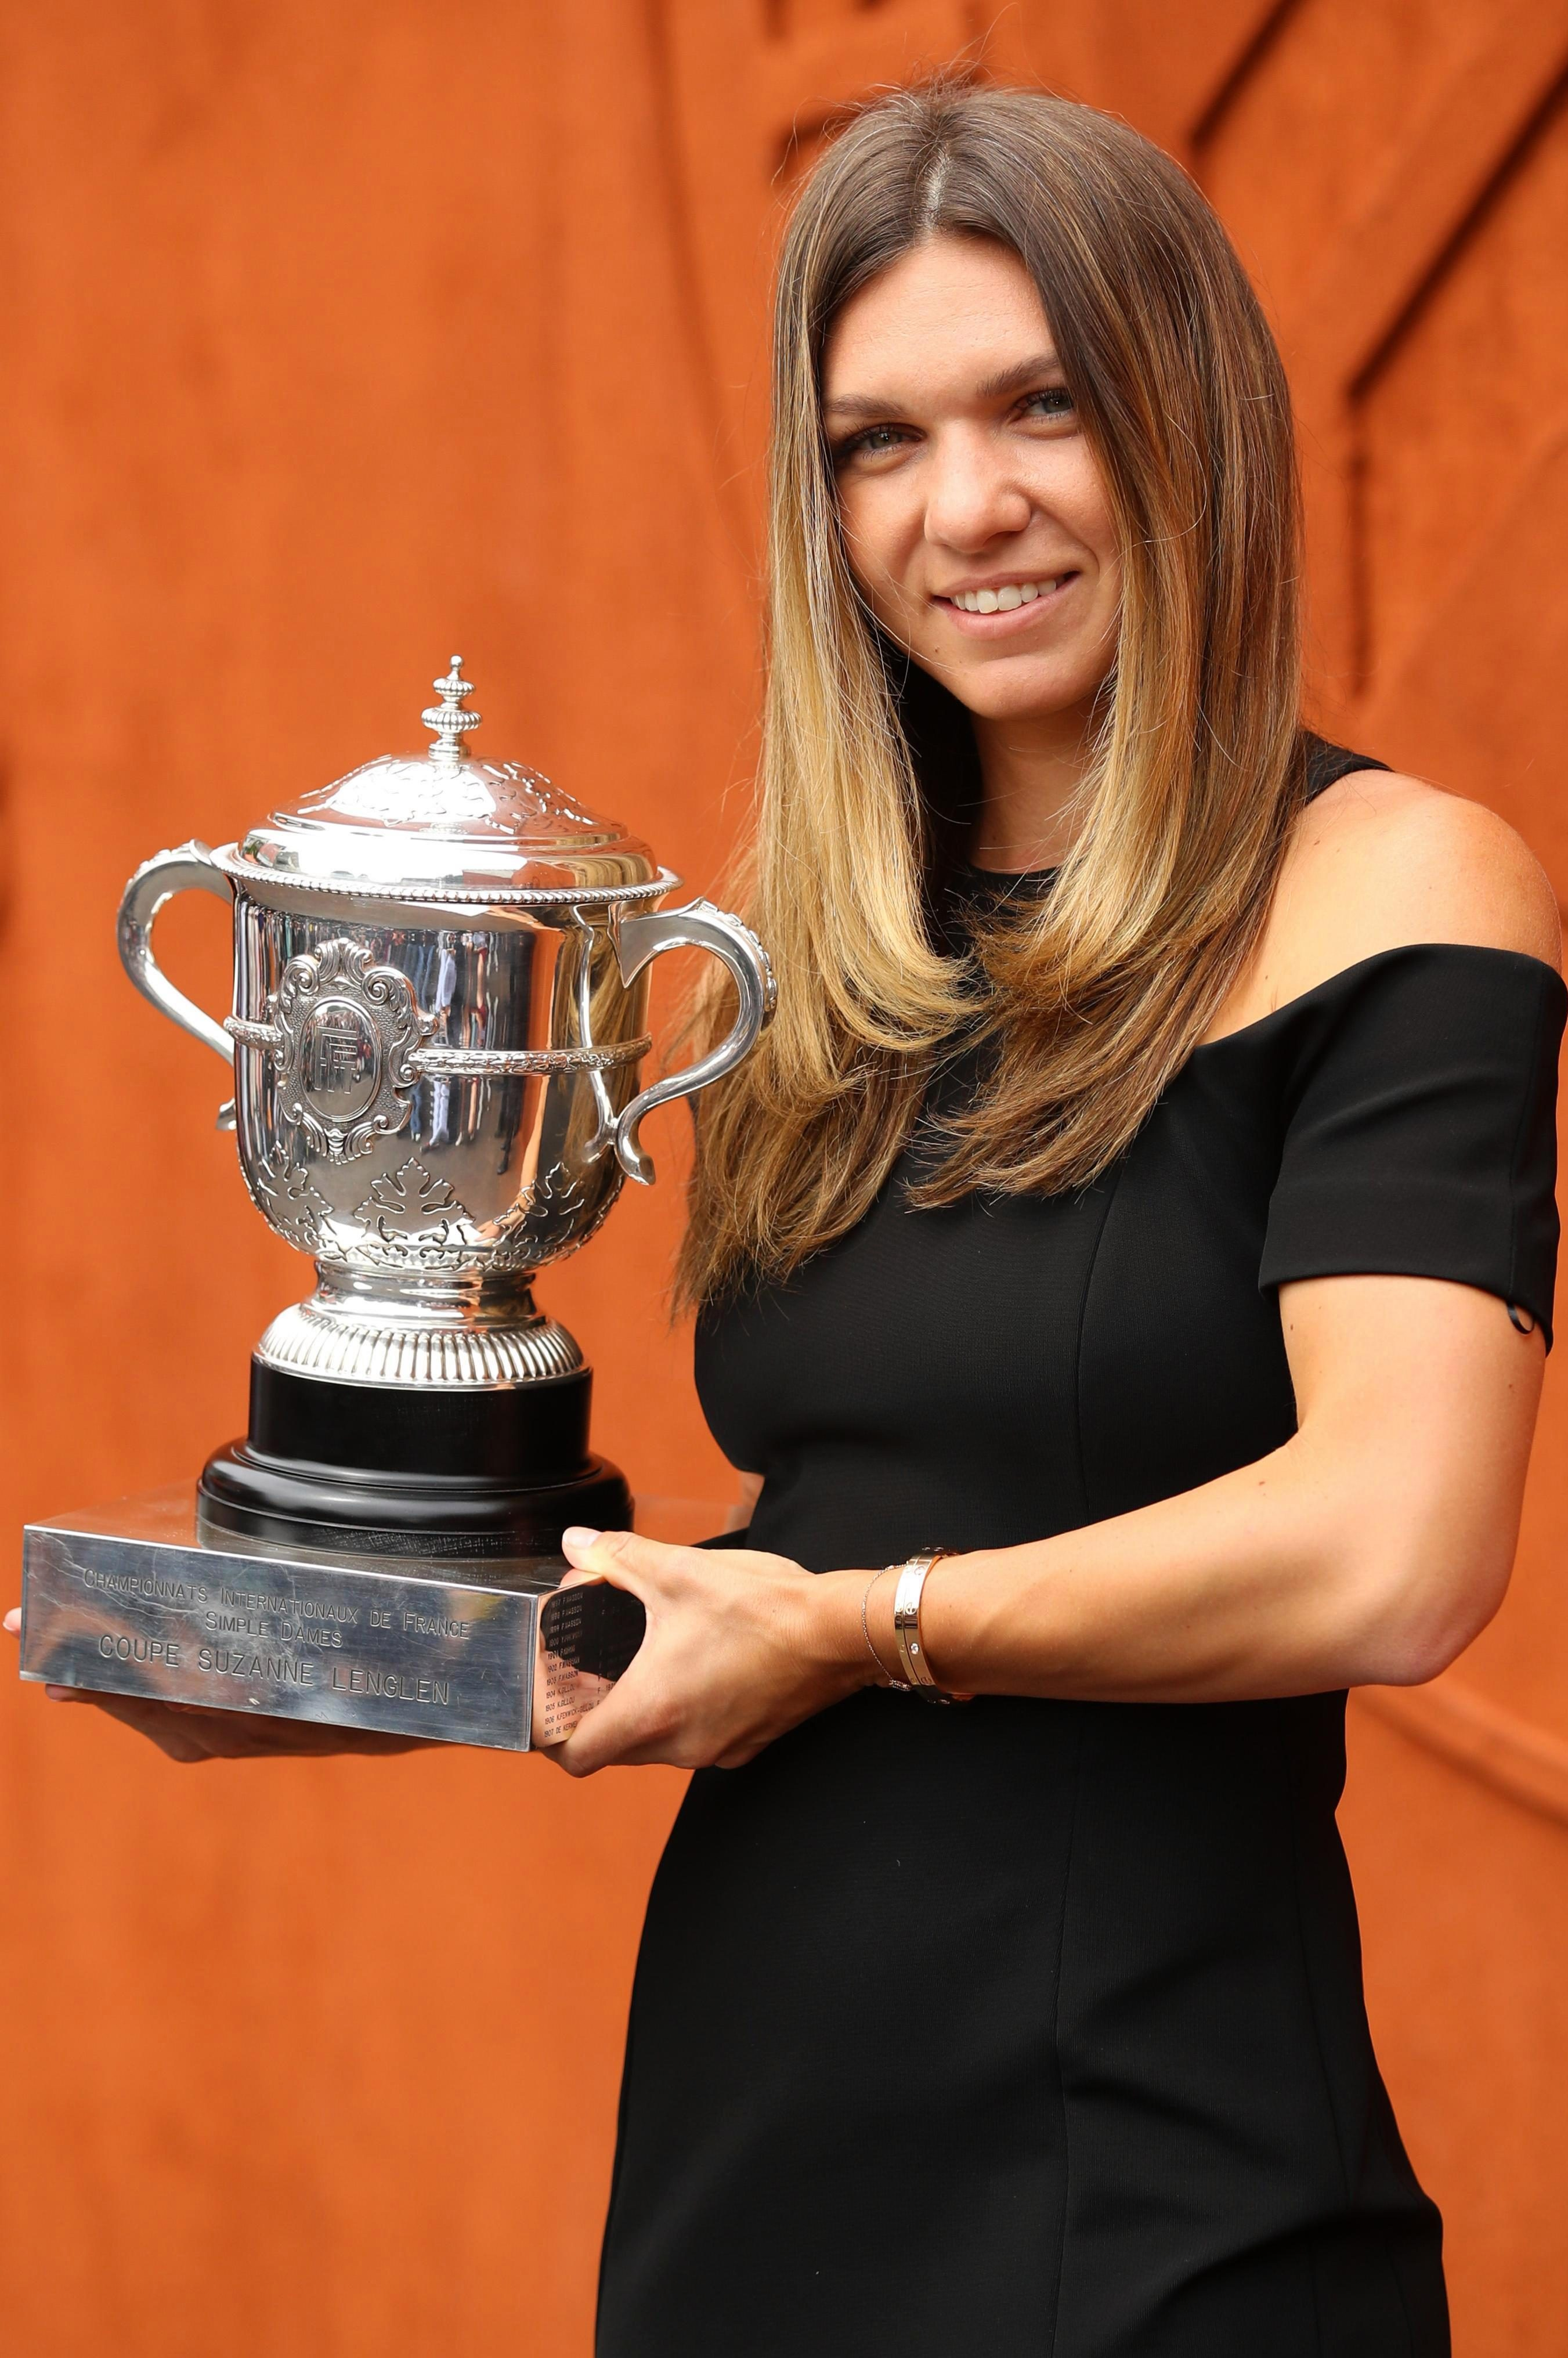 Halep won her first Grand Slam title at Roland Garros earlier this year